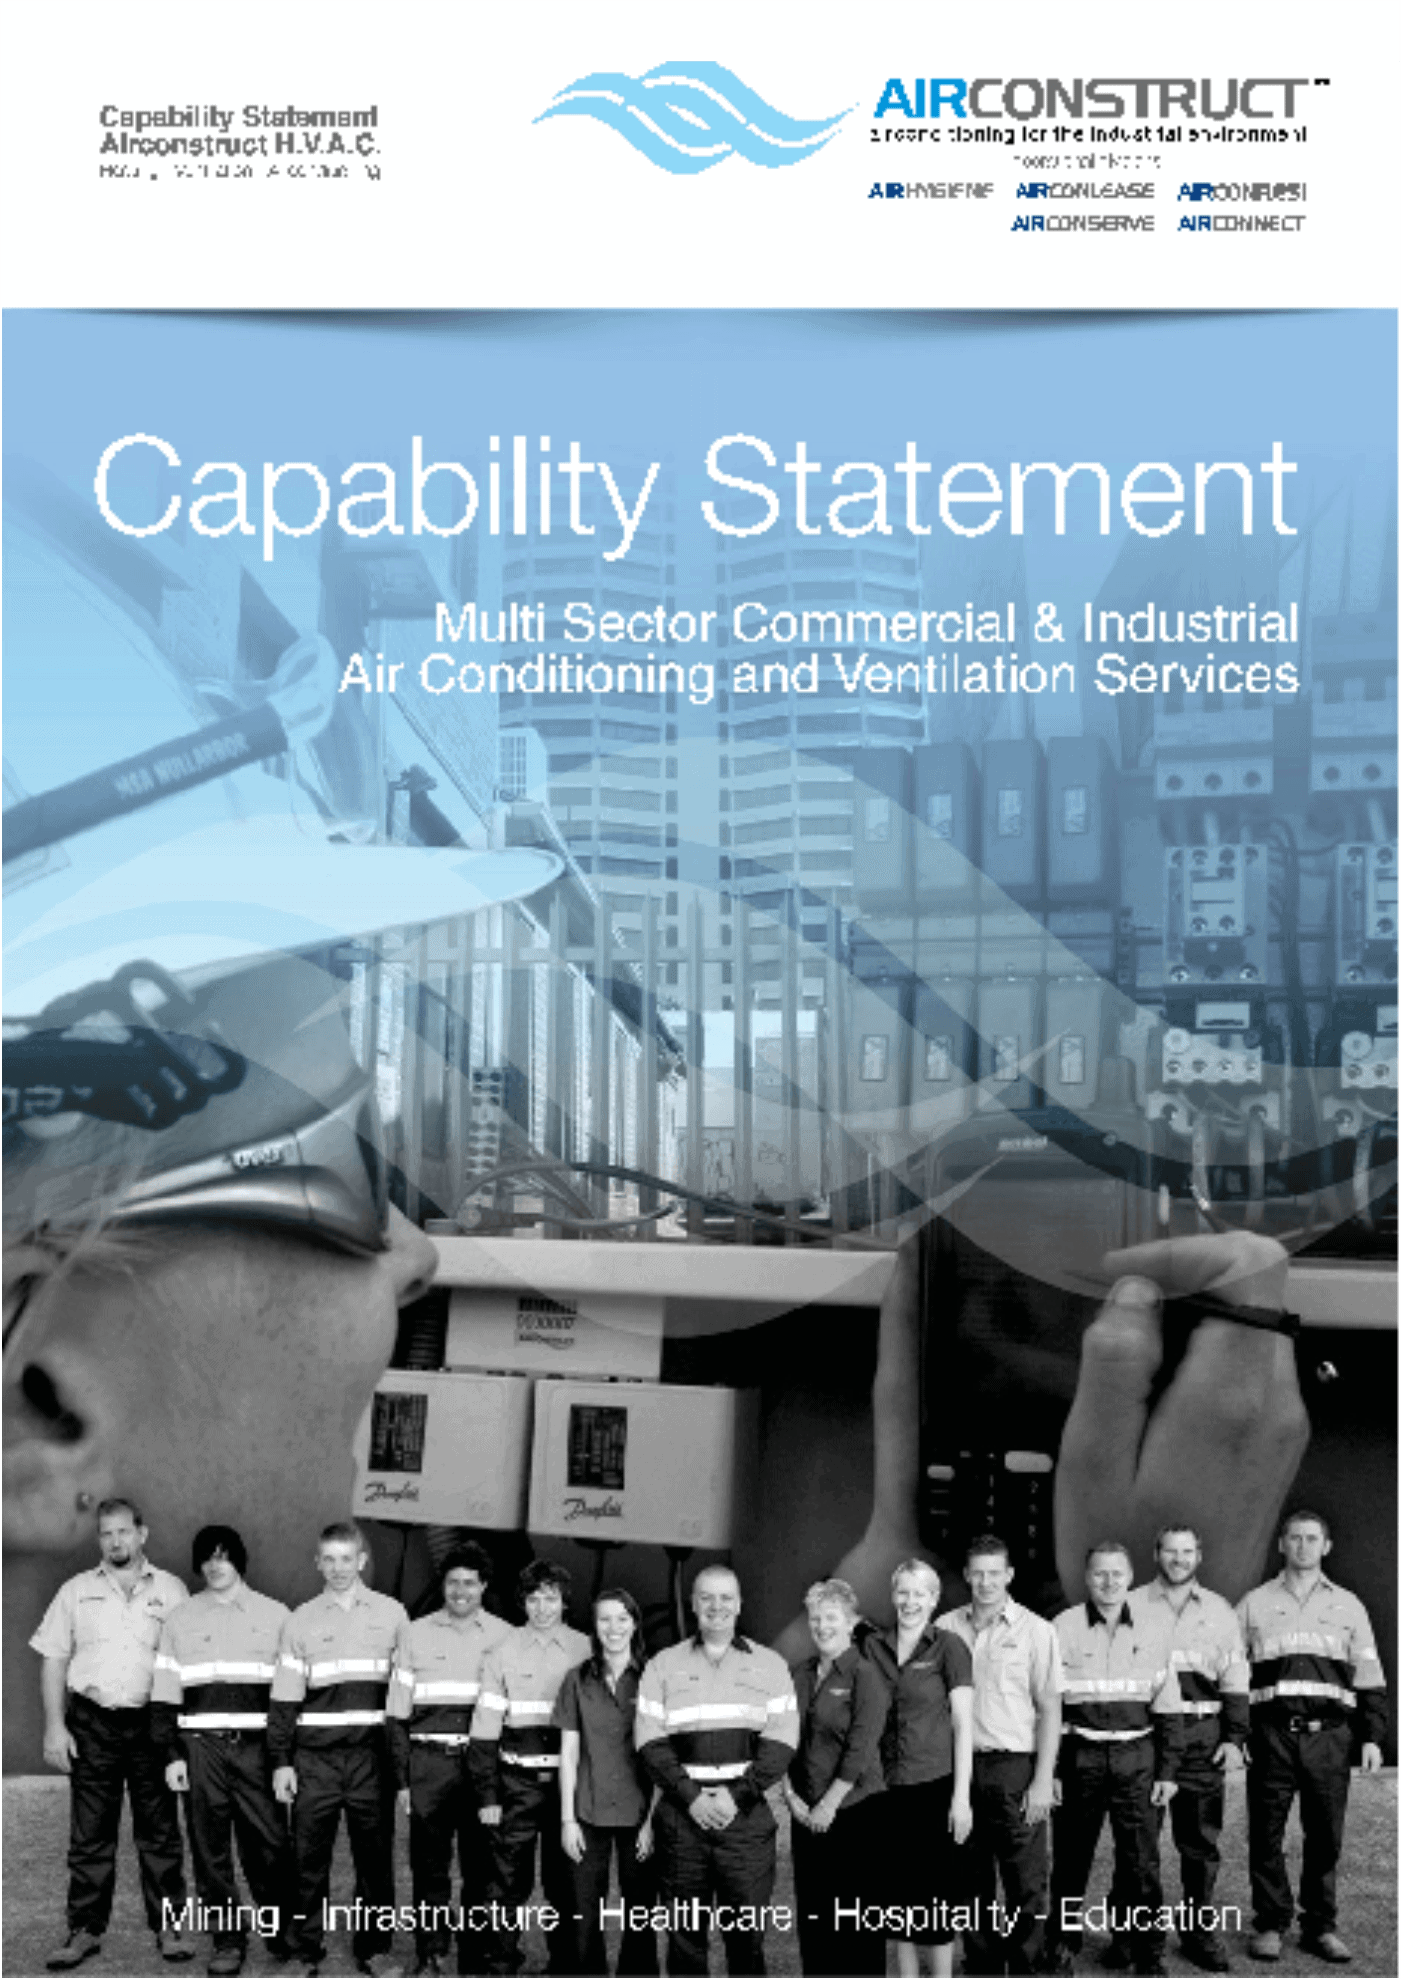 2014 Airconstruct Capability Statement